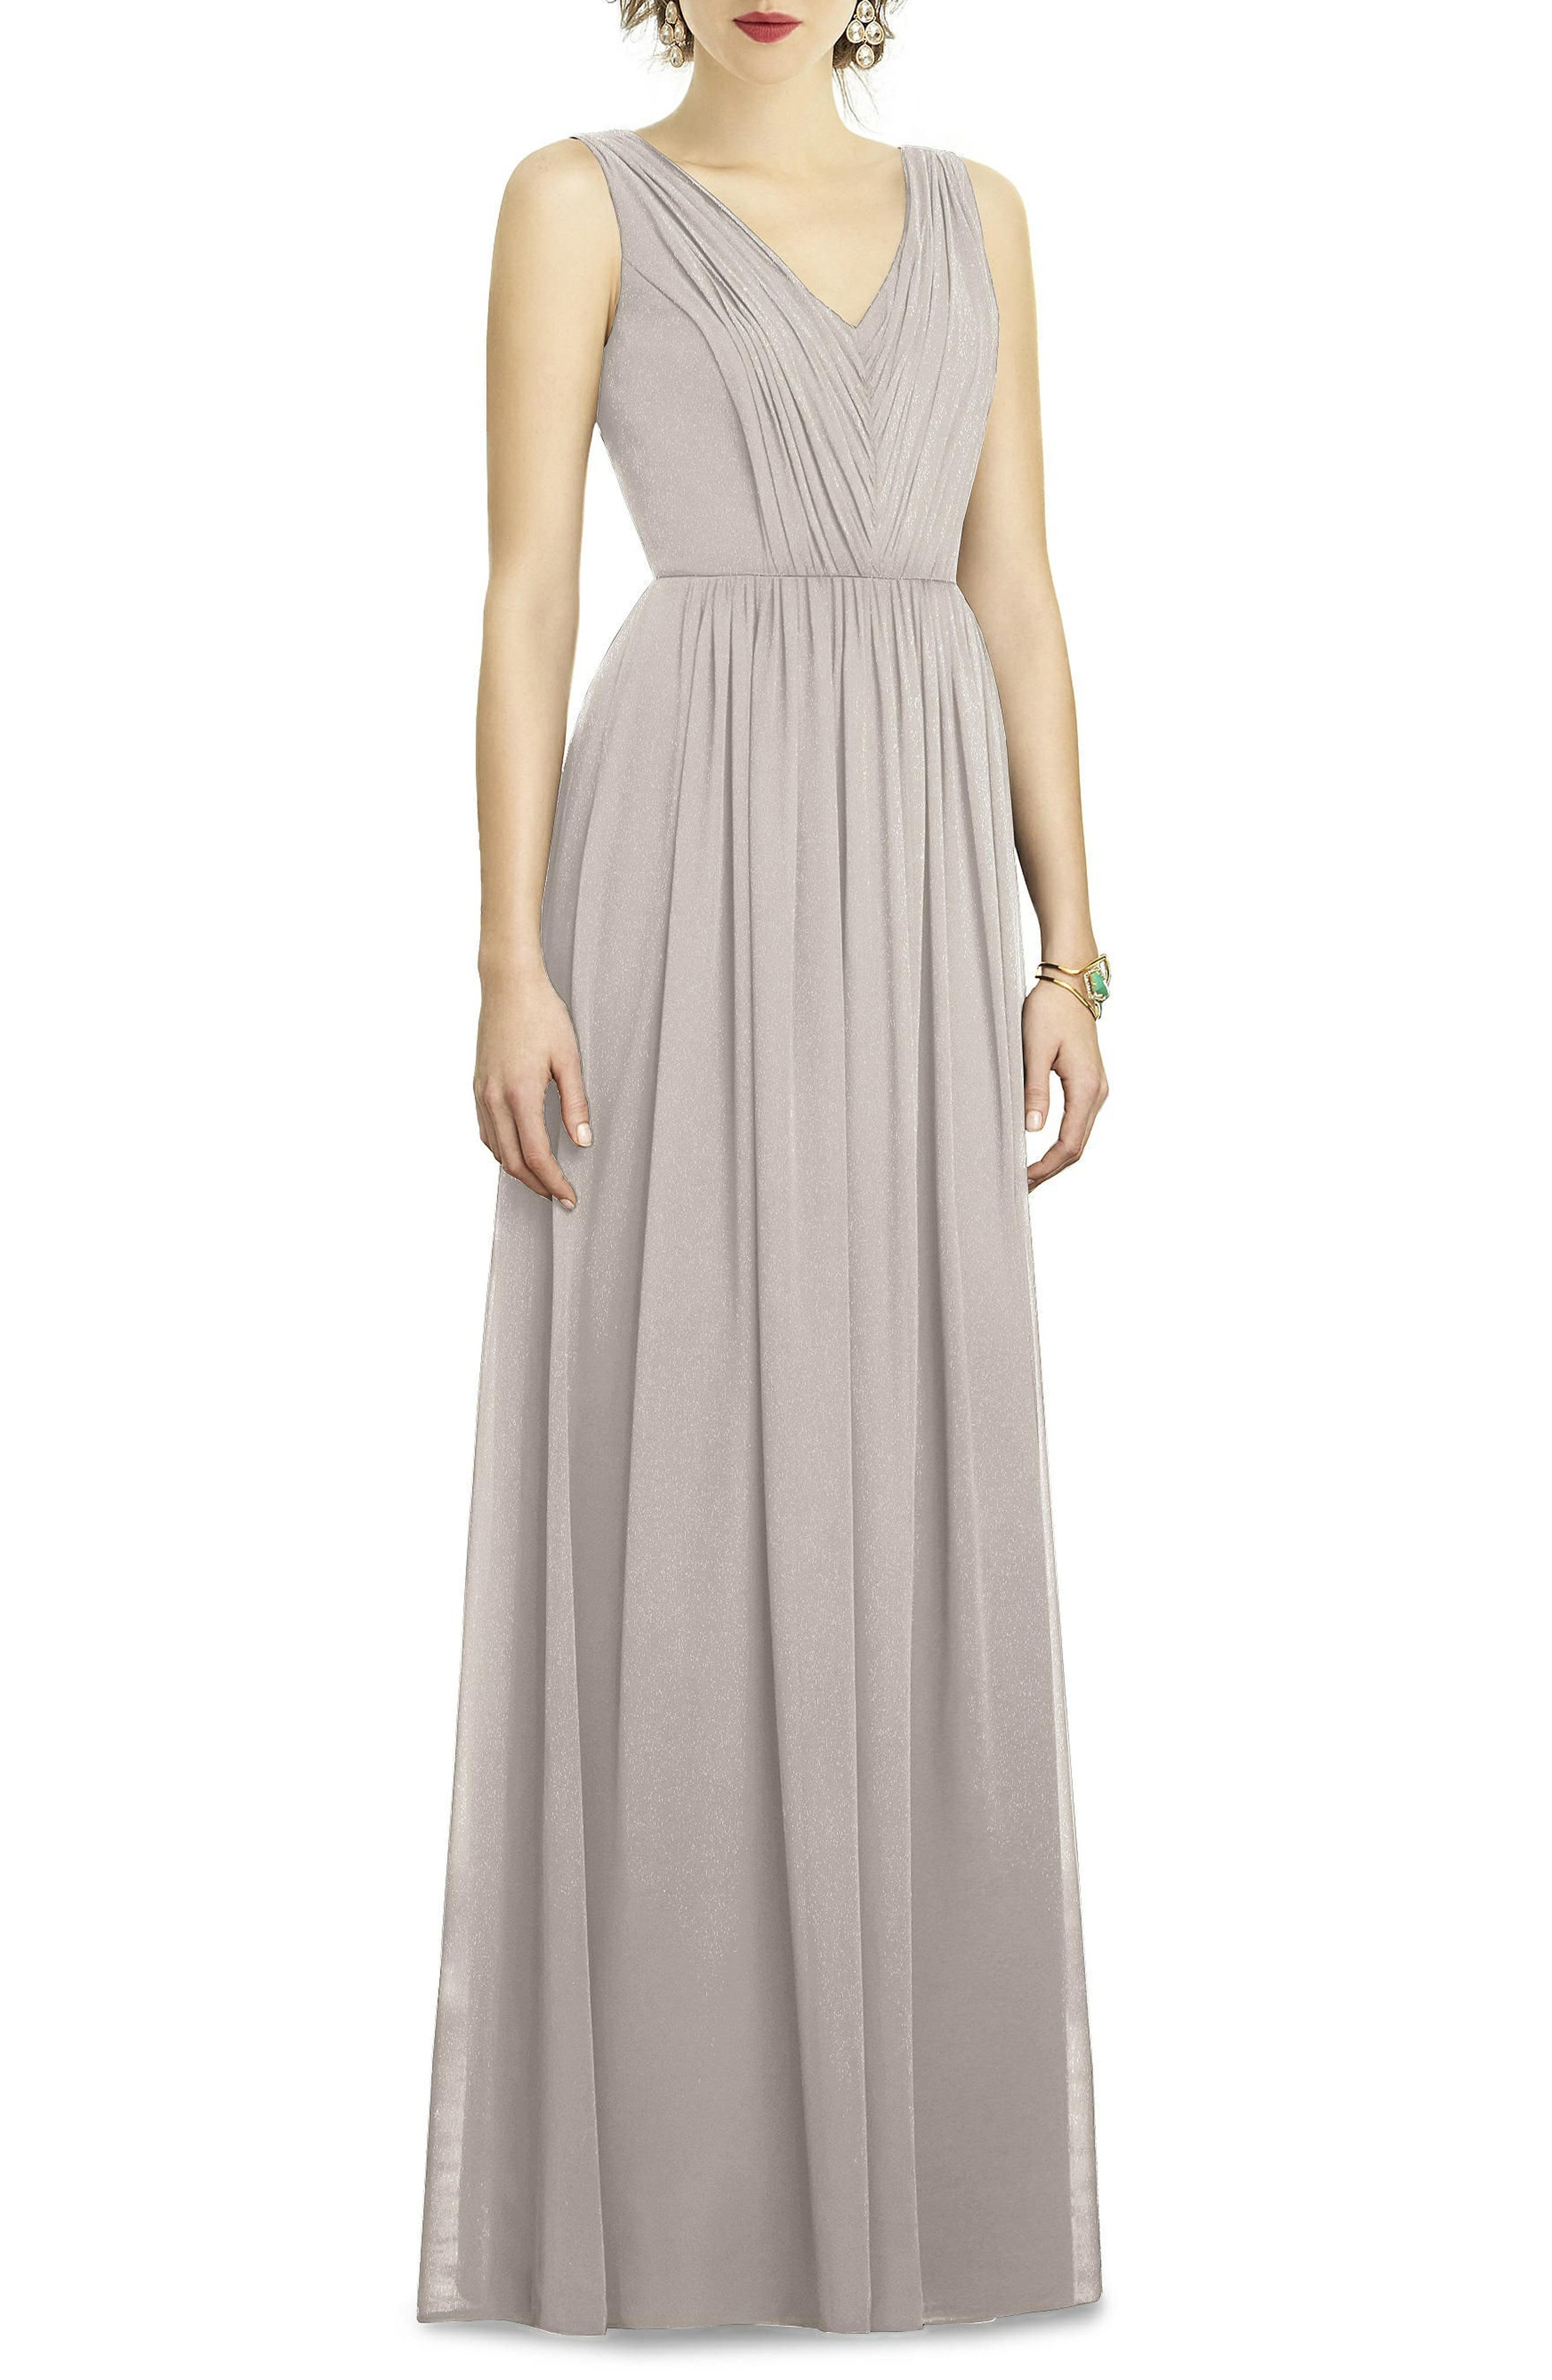 Dessy Collection Shirred Shimmer Chiffon Gown, Beige